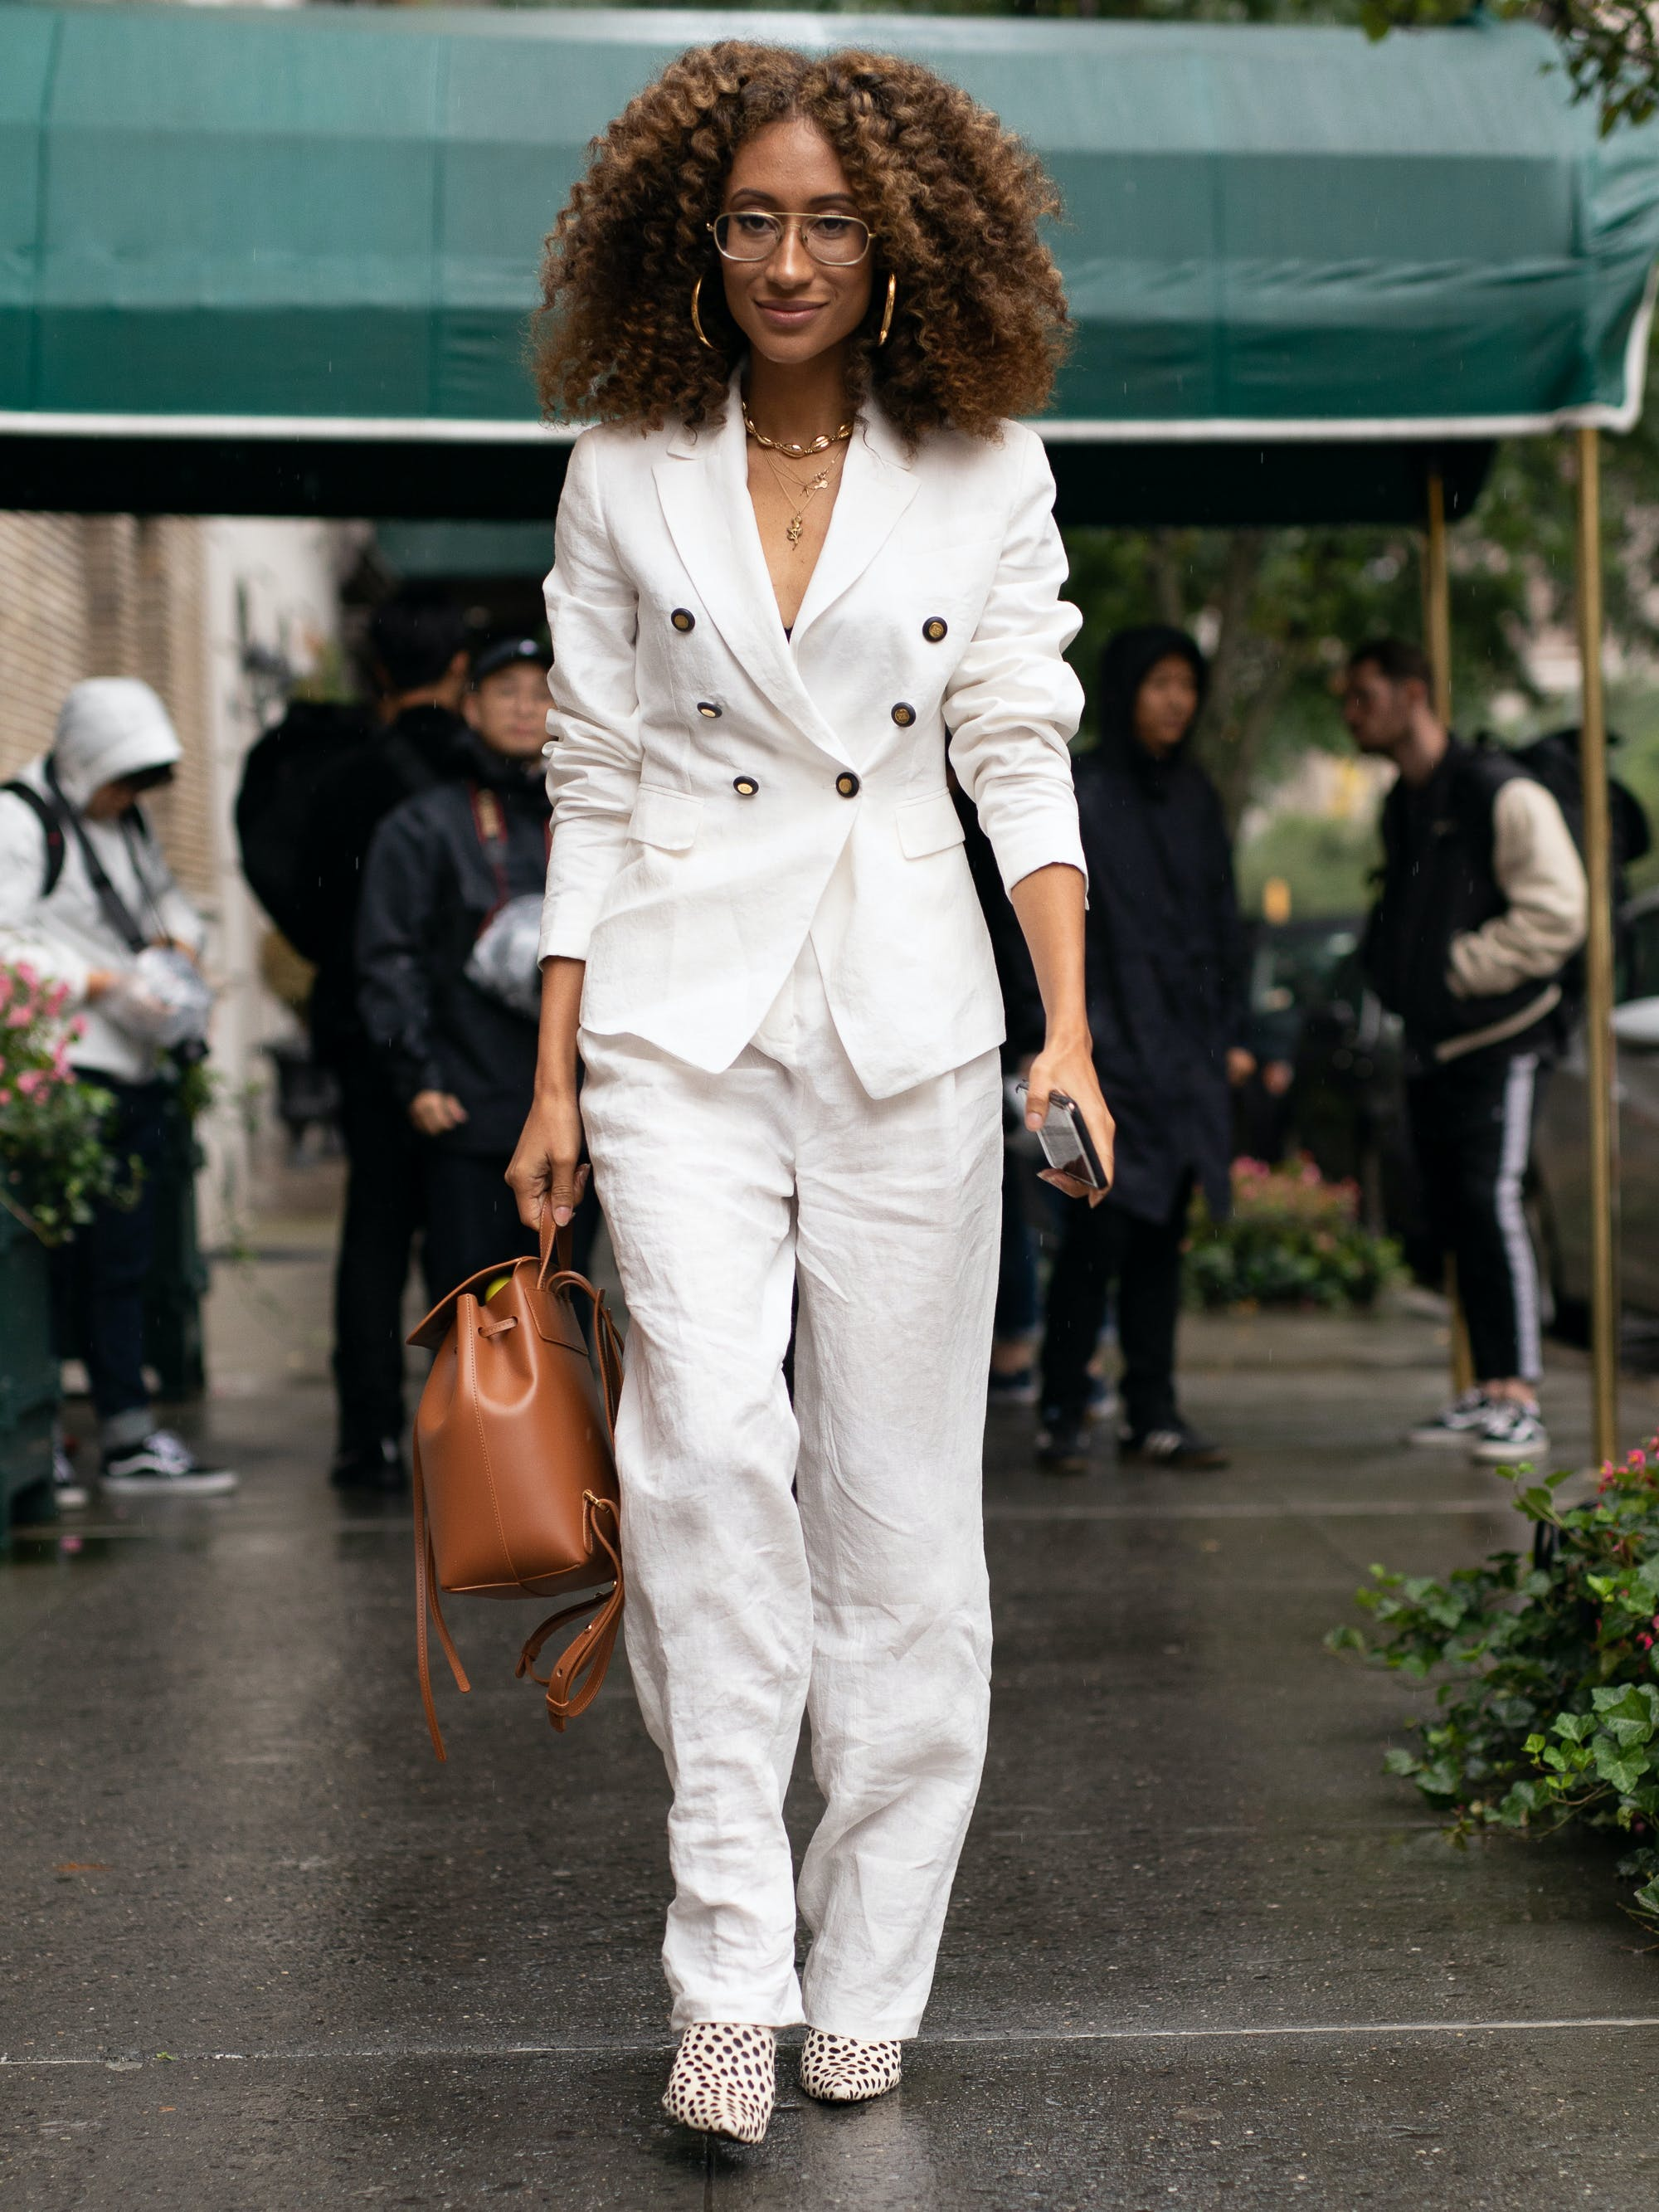 woman wearing all white